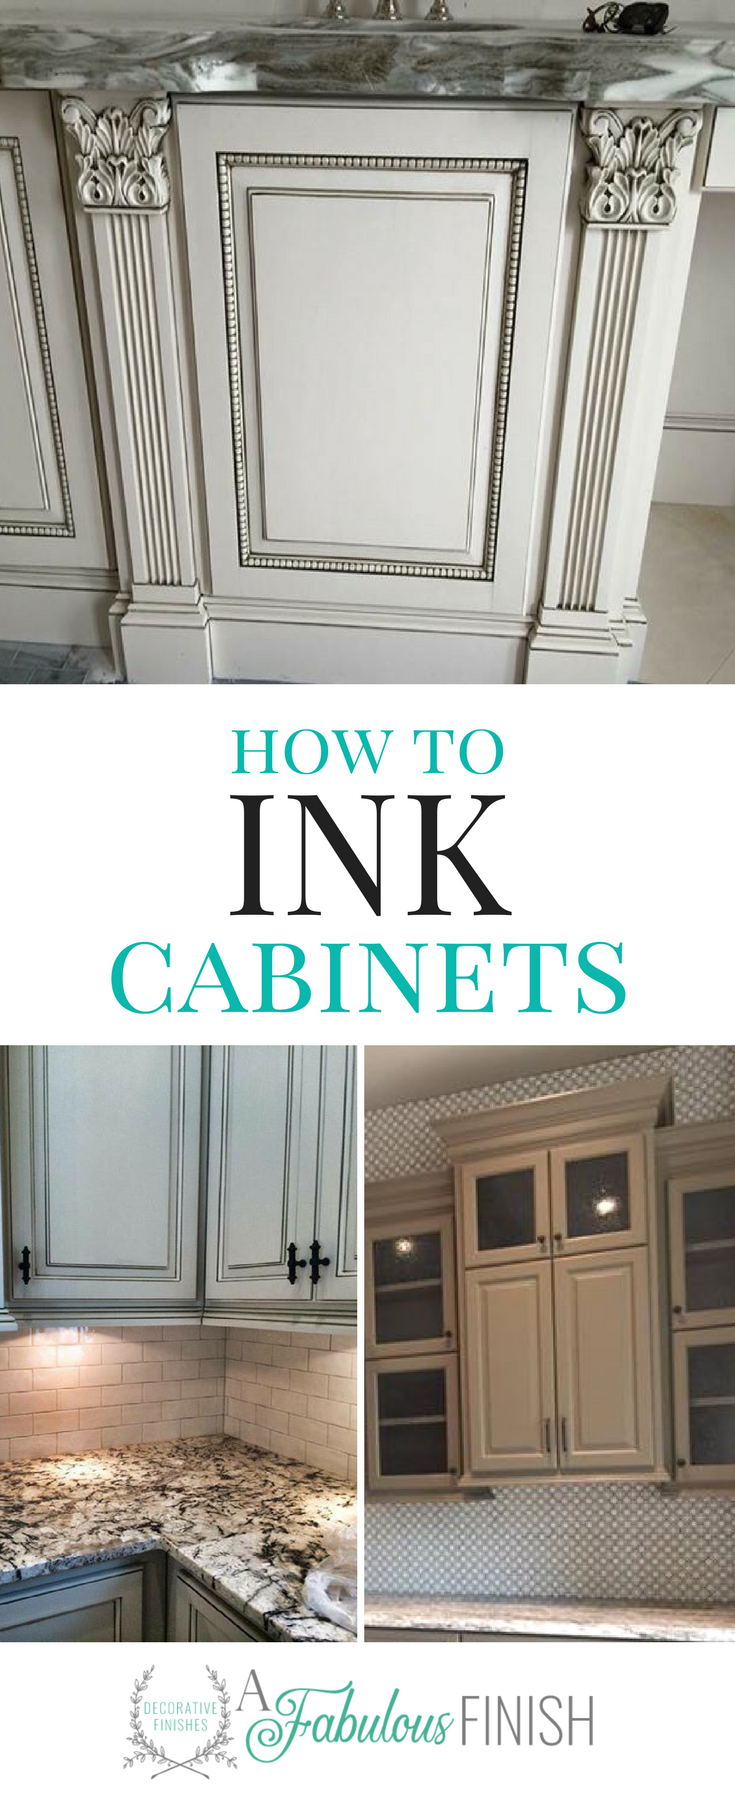 Inking Cabinets Makes The Detailed Areas On Kitchen Cabinets Really Stand Out Learn Furniture Painting Techniques Repainting Furniture Furniture Painting Tips